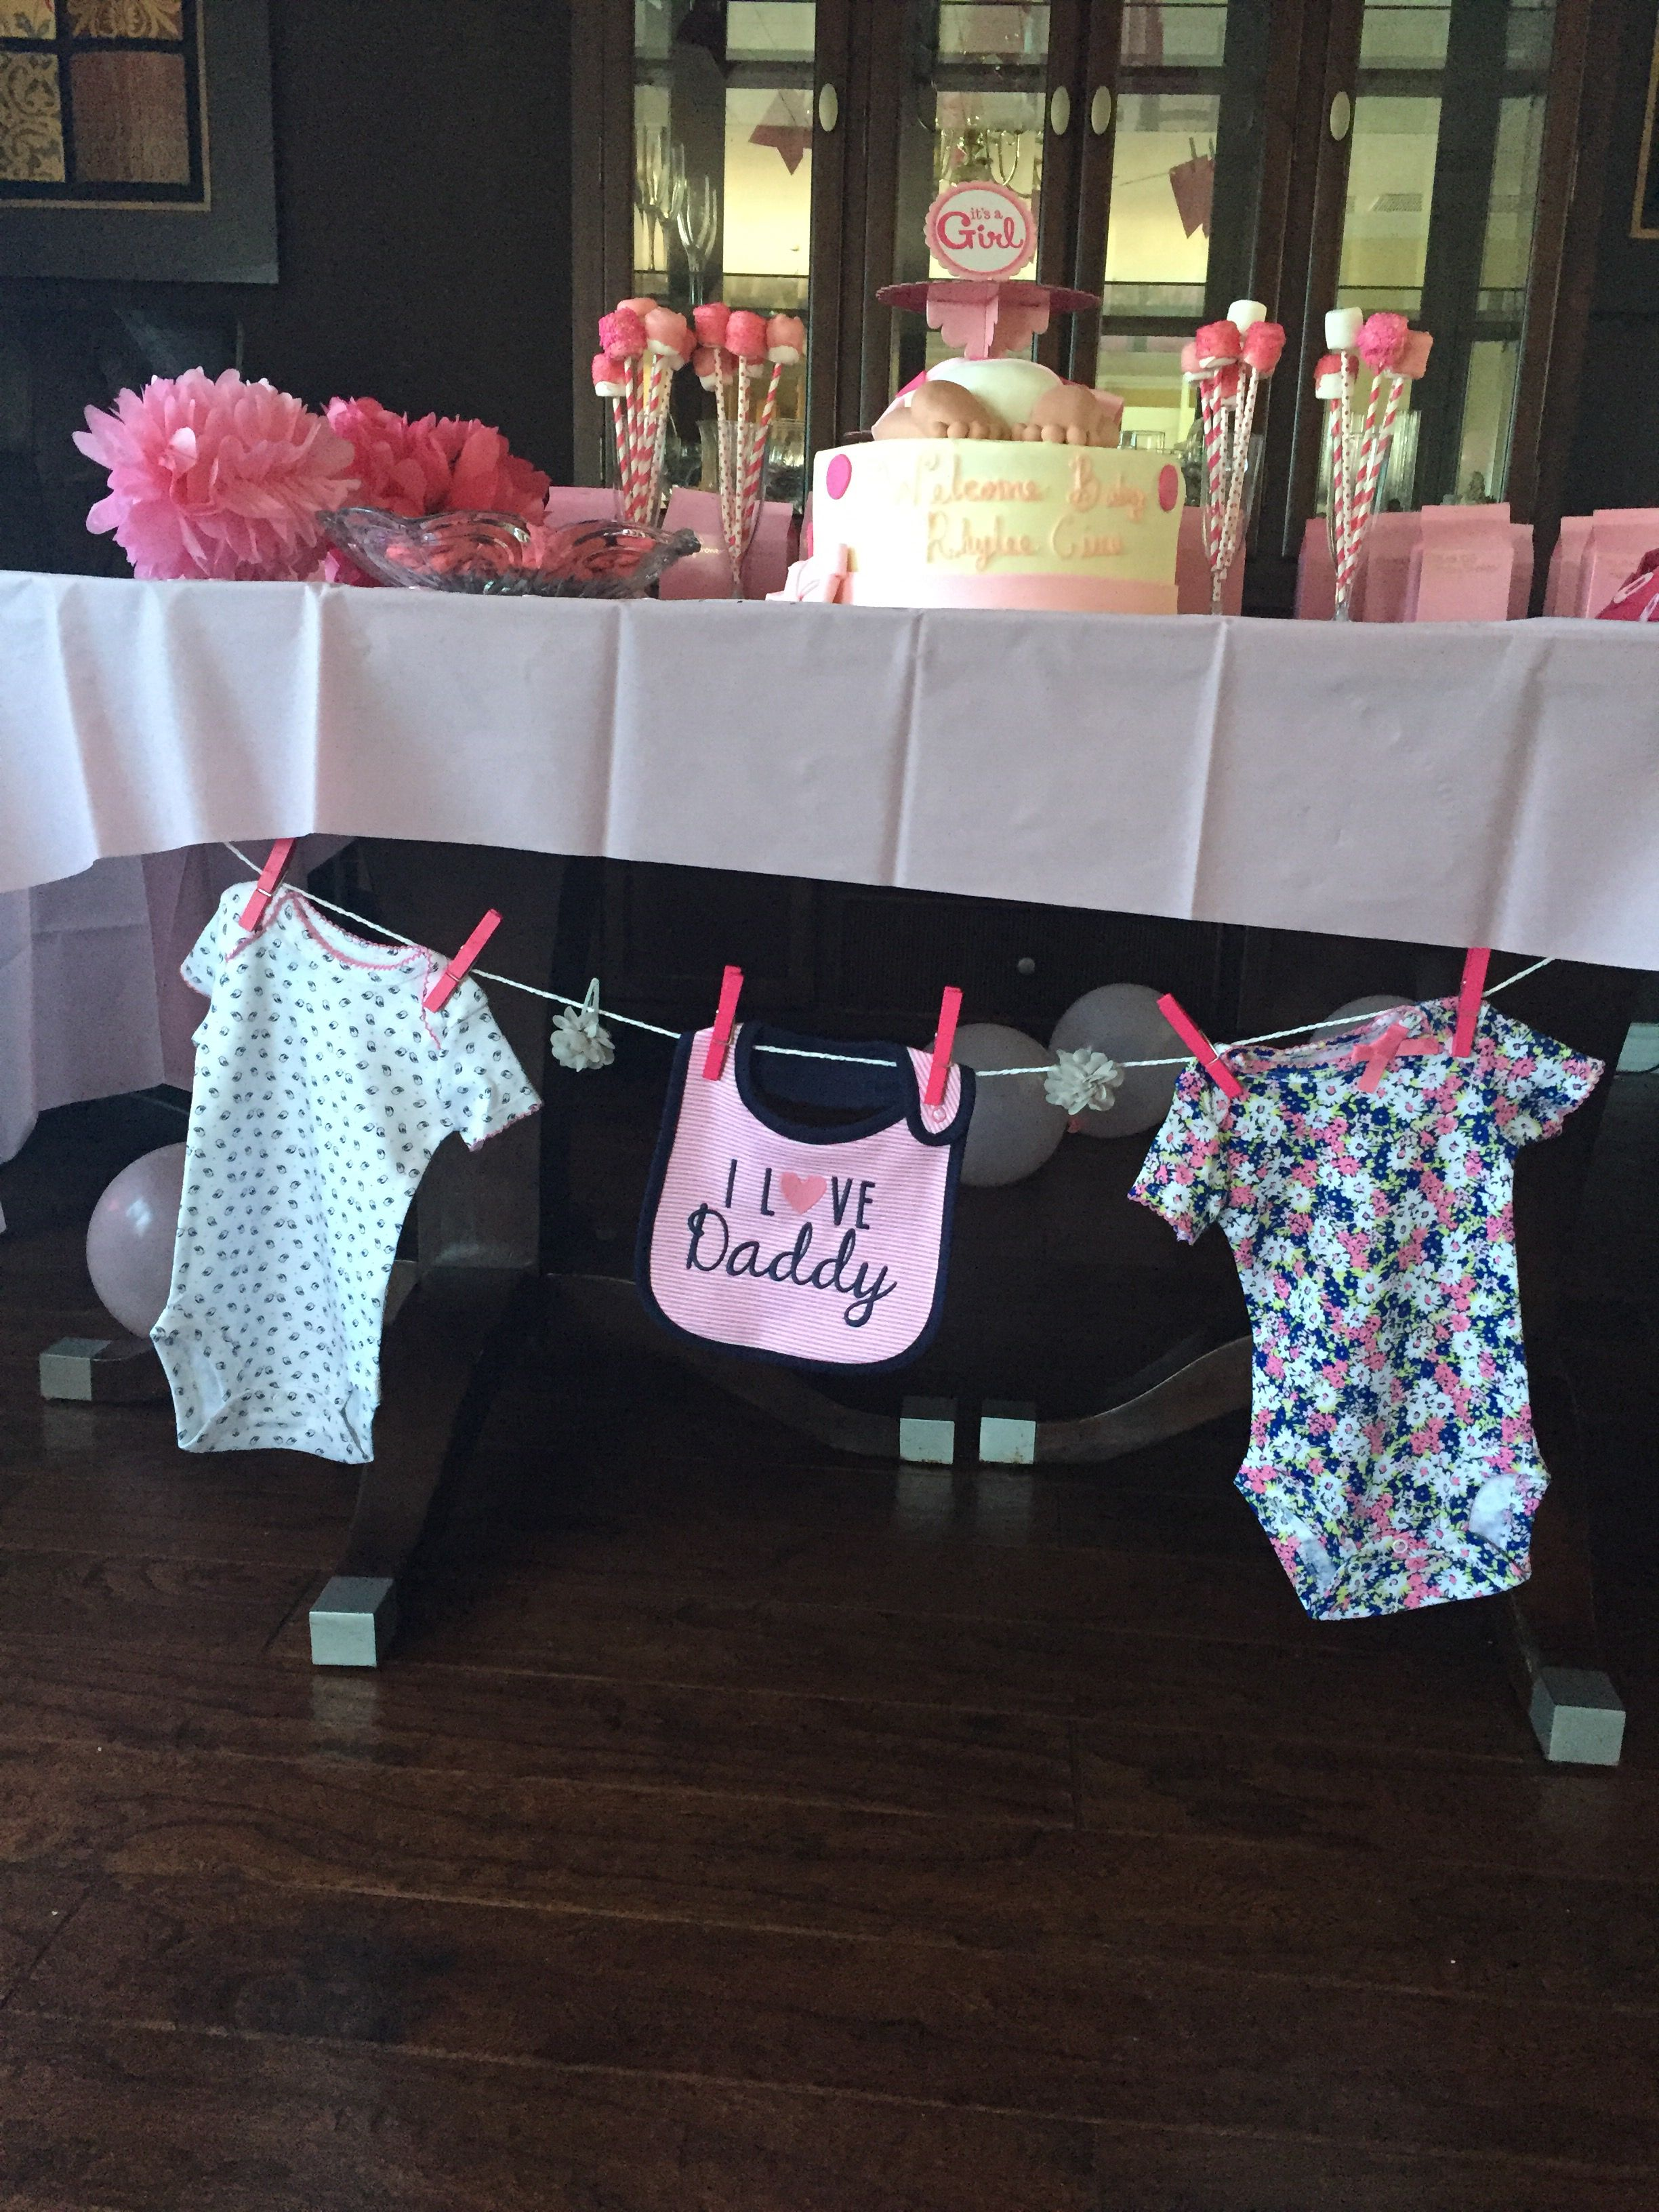 Baby clothes from Target clothes line with pink clothes pins for